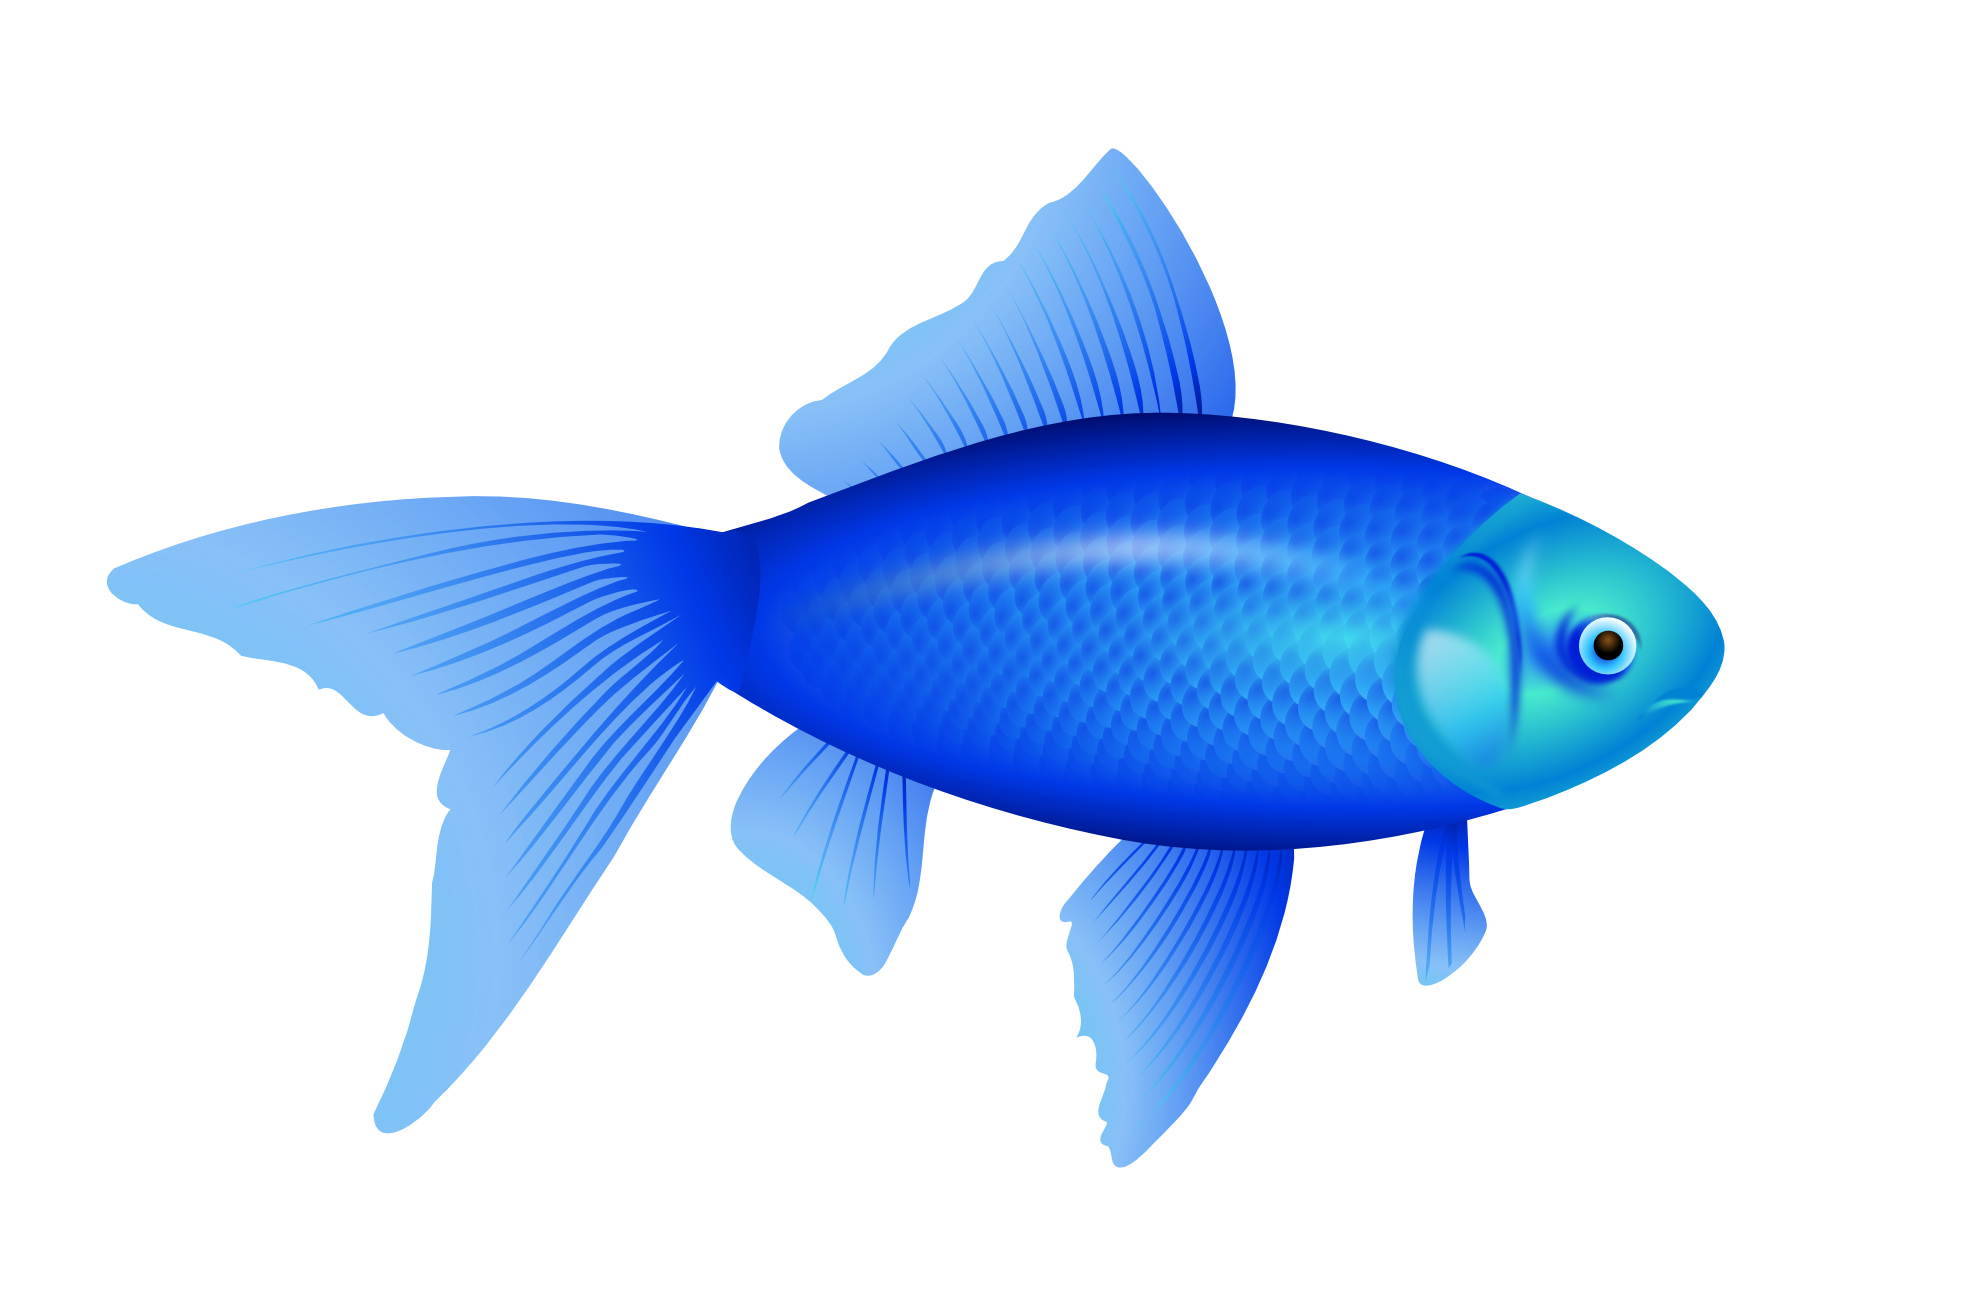 Tuna clipart fish gill. Page